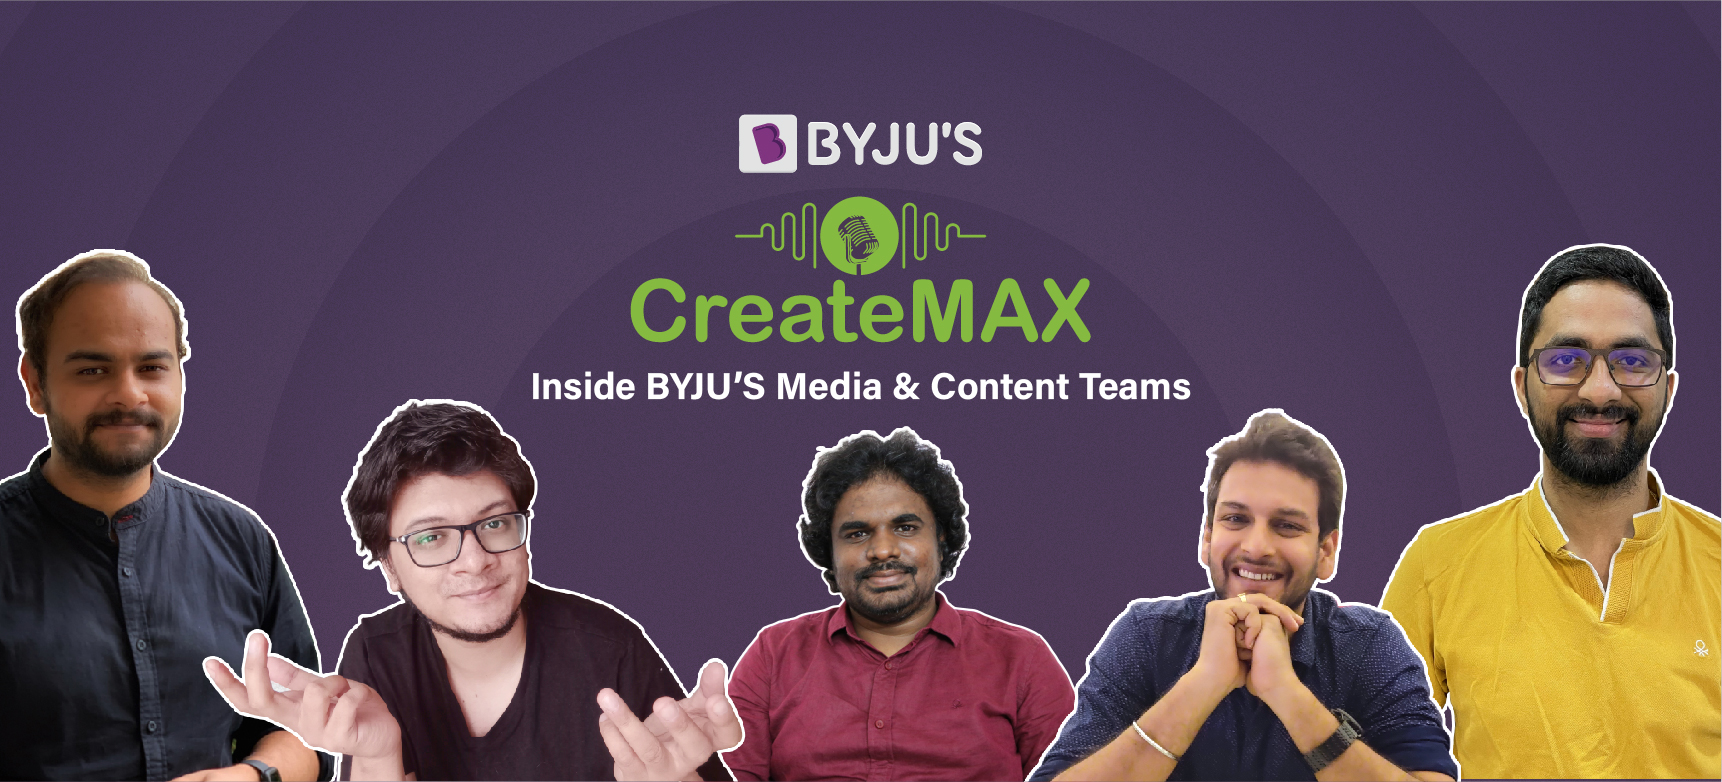 byjus, createmax, media and content team